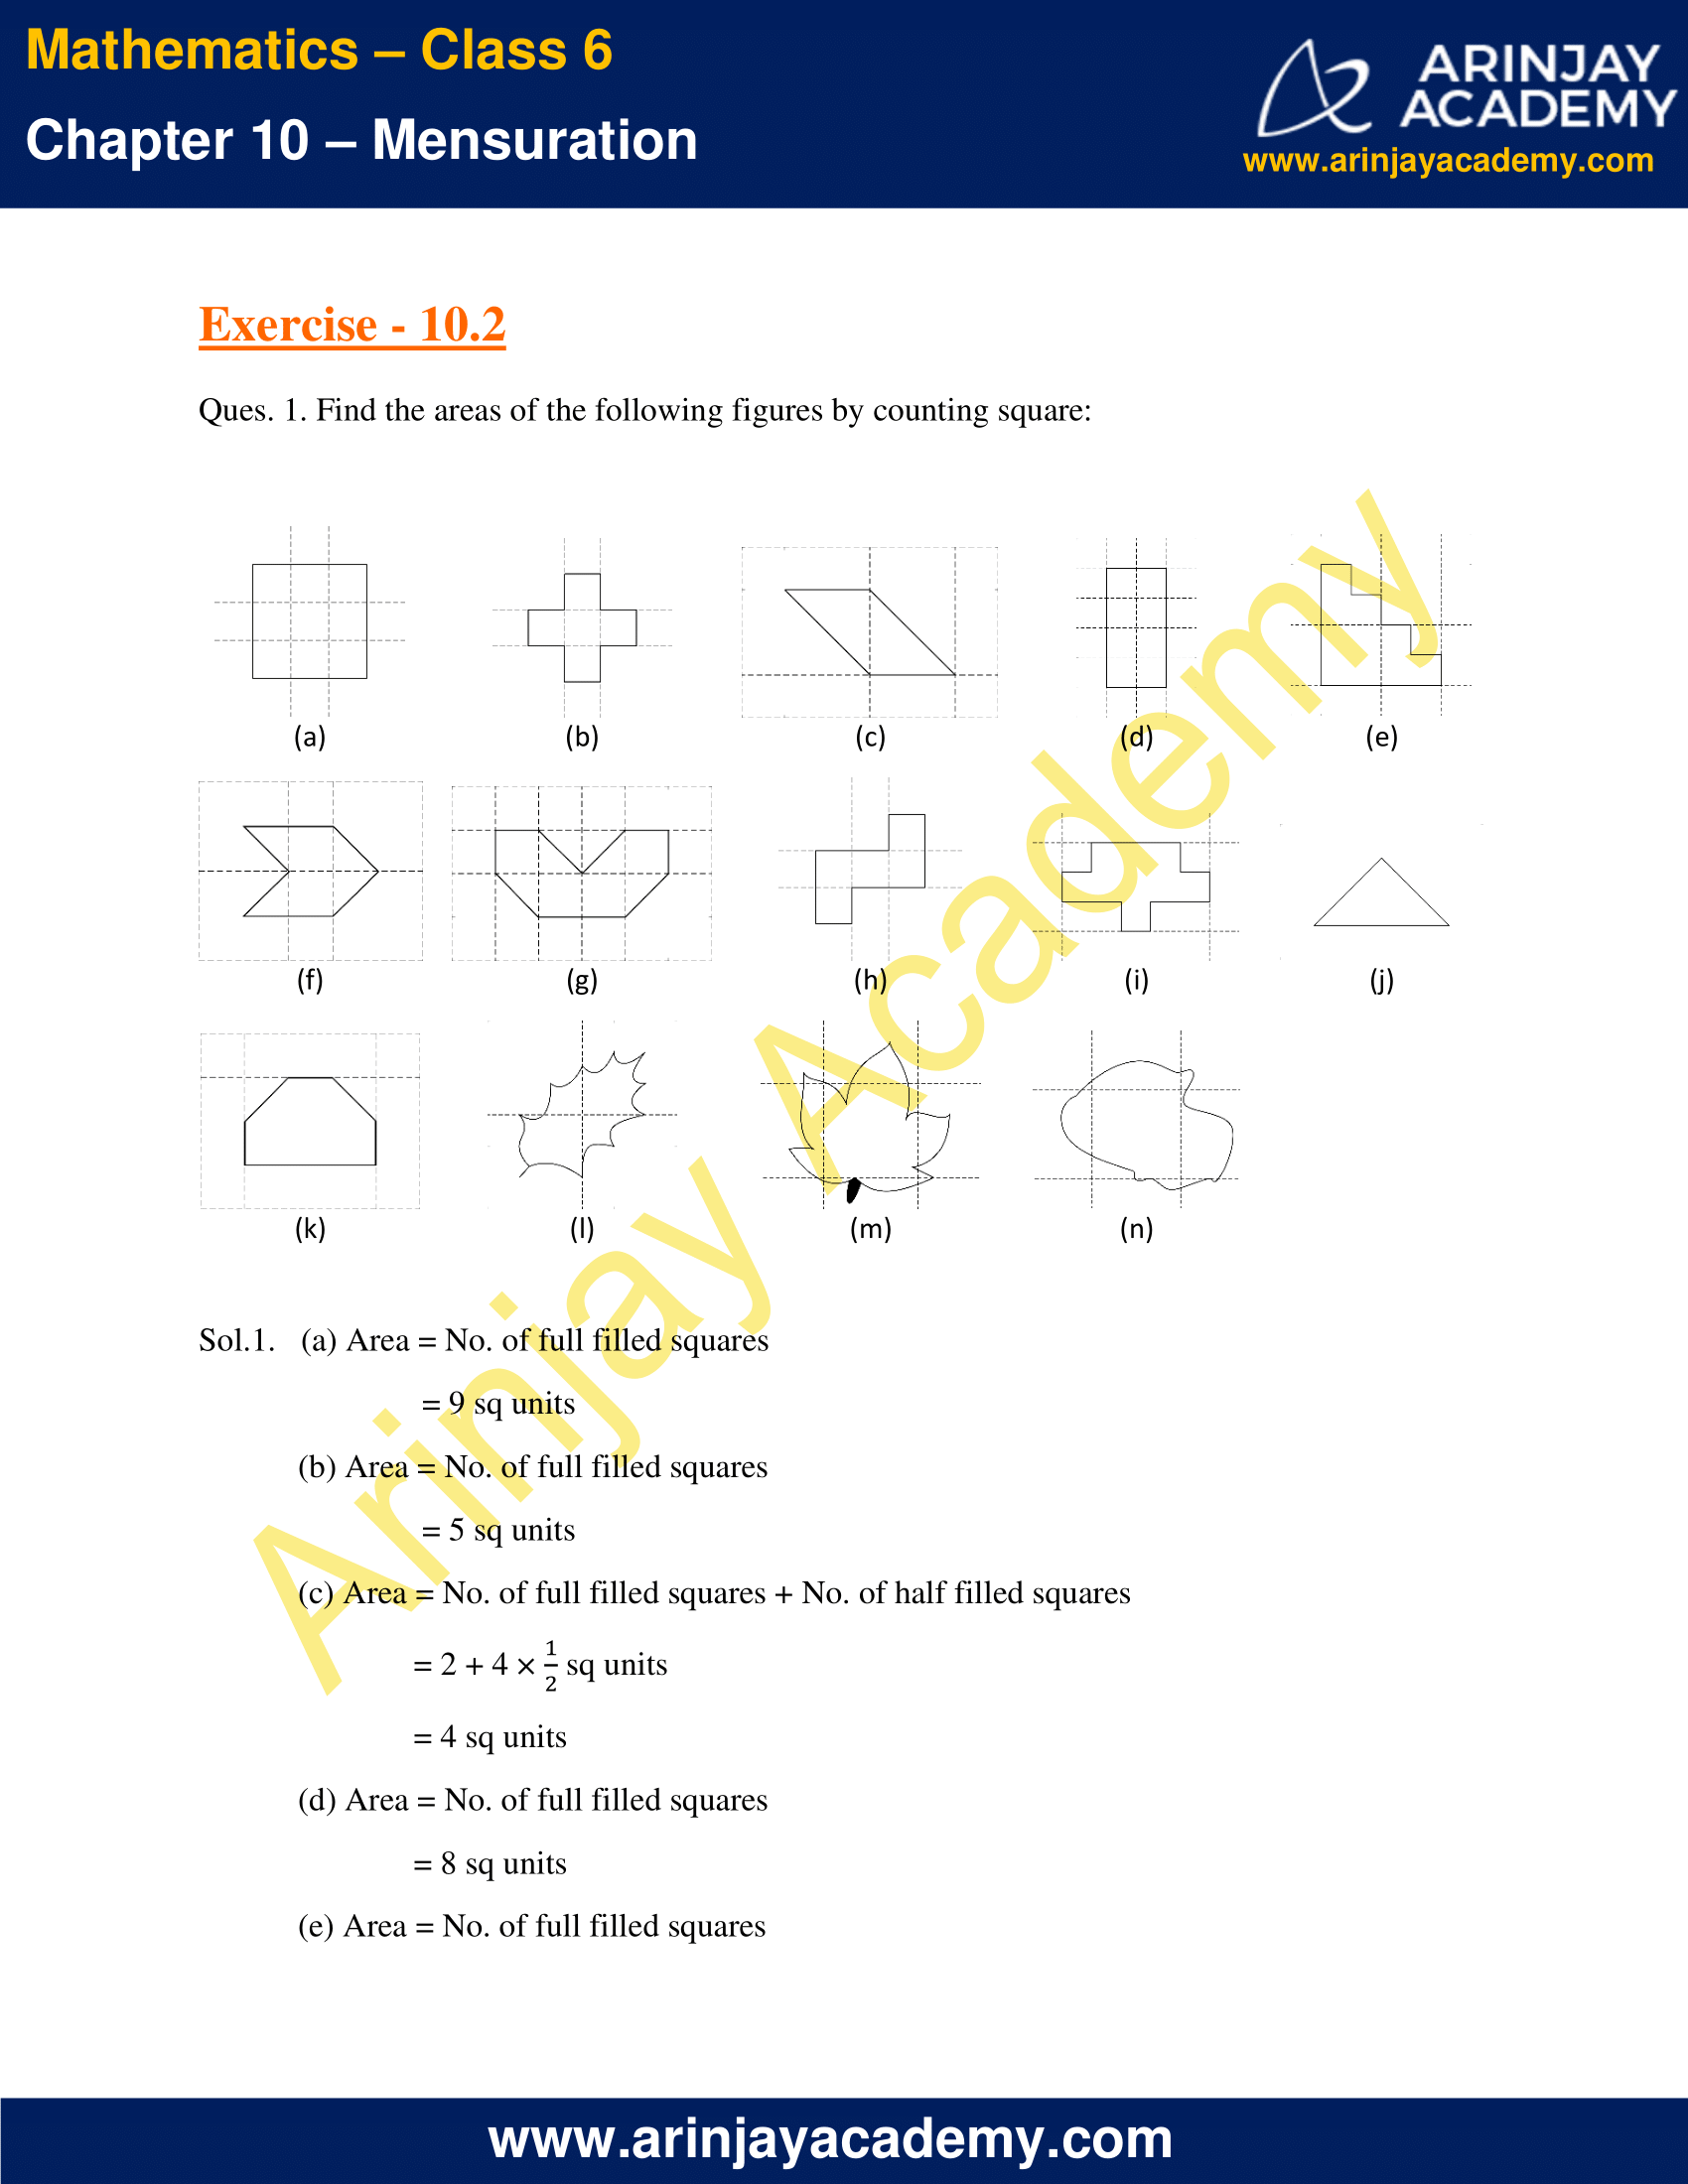 NCERT Solutions for Class 6 Maths Chapter 10 Exercise 10.2 image 1